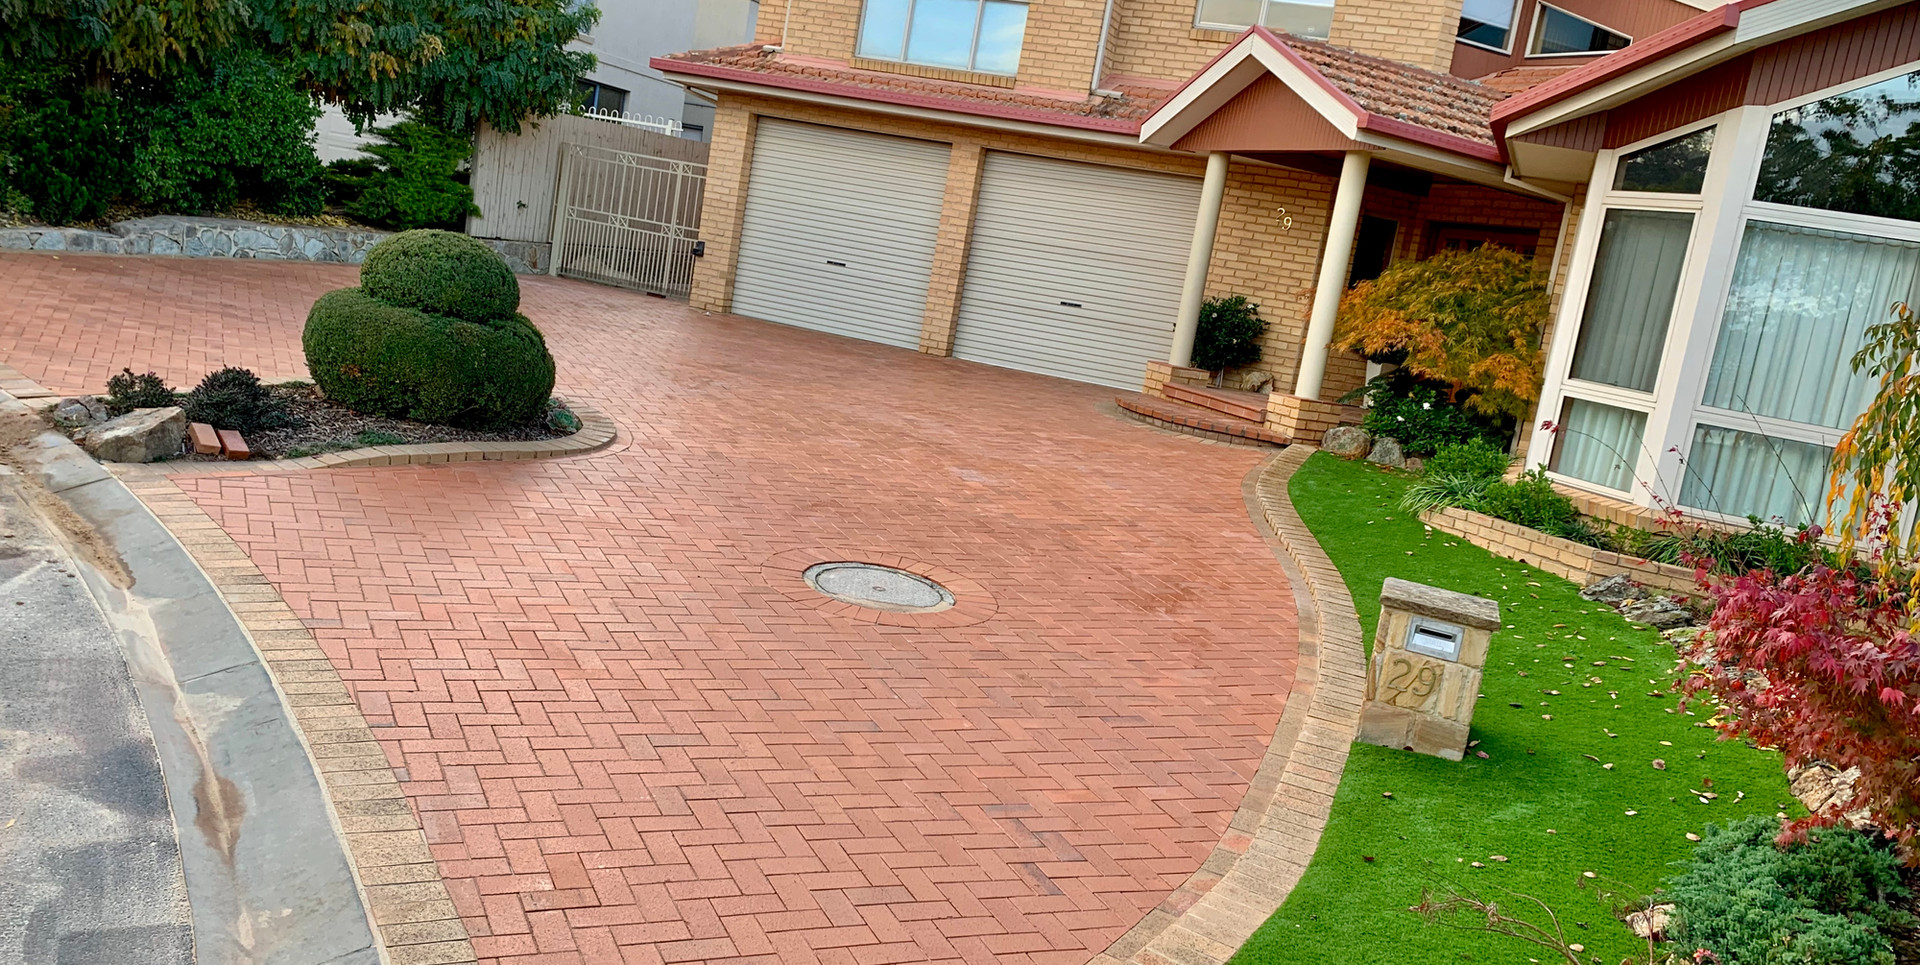 Landscaping in Canberra